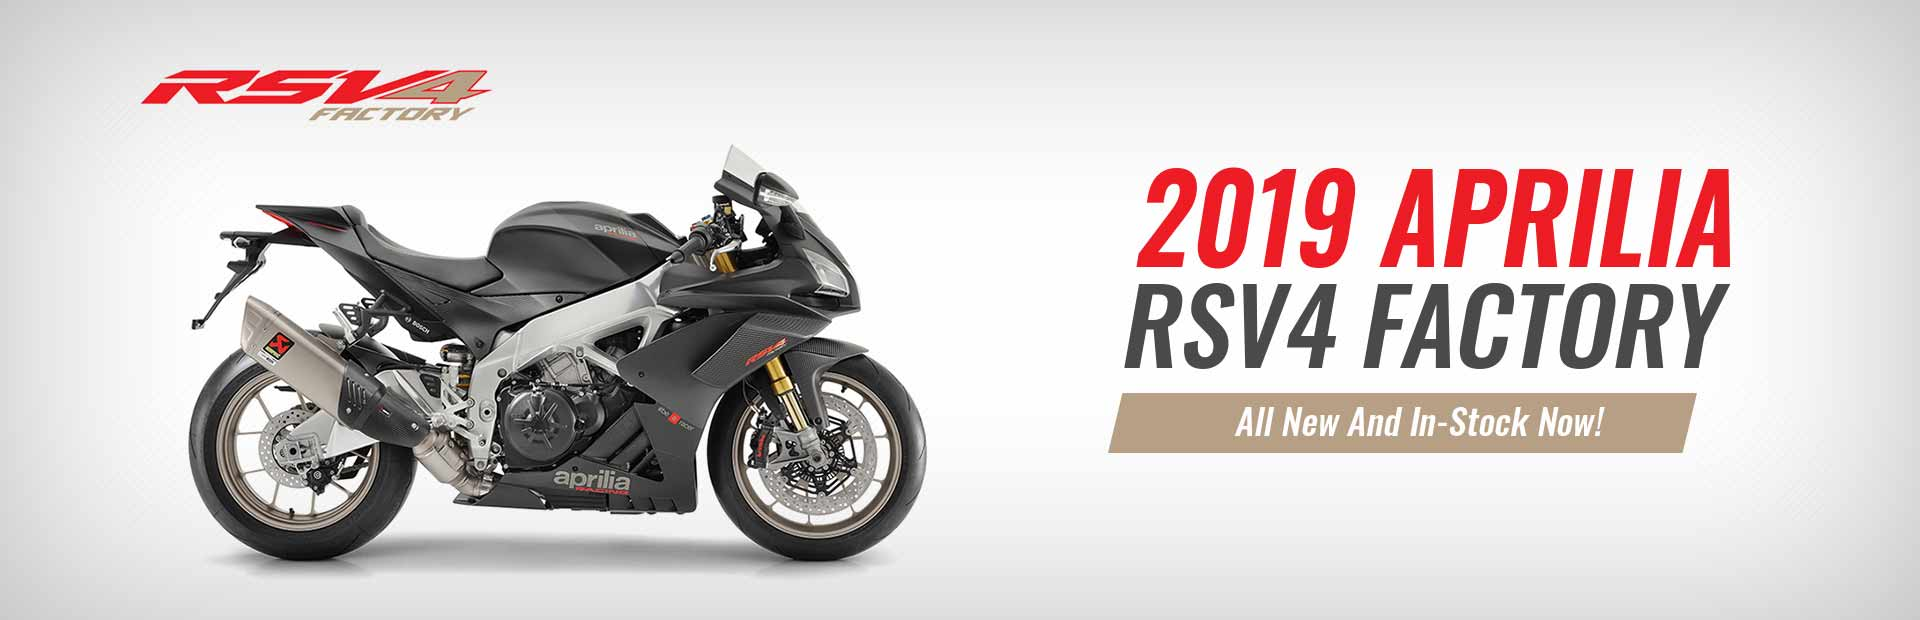 2019 Aprilia RSV4 Factory. All new and in-stock now! Click here now!